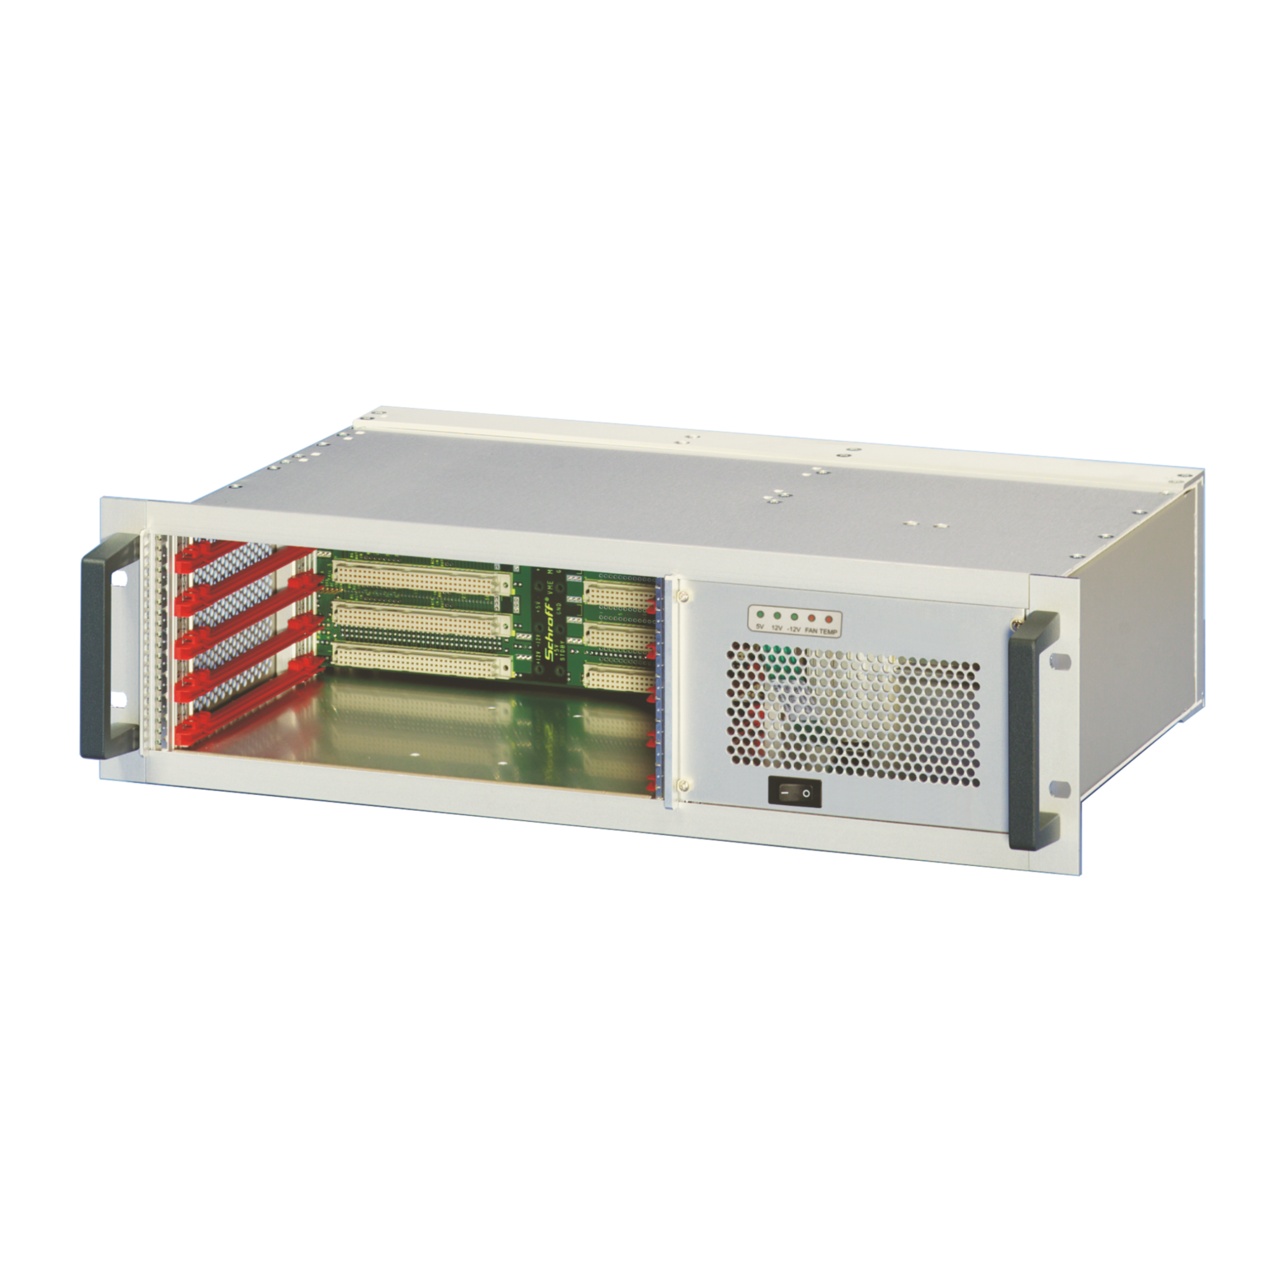 Image for VME-based systems 3 U, 5 slot from nVent SCHROFF | Europe, Middle East, Africa and India